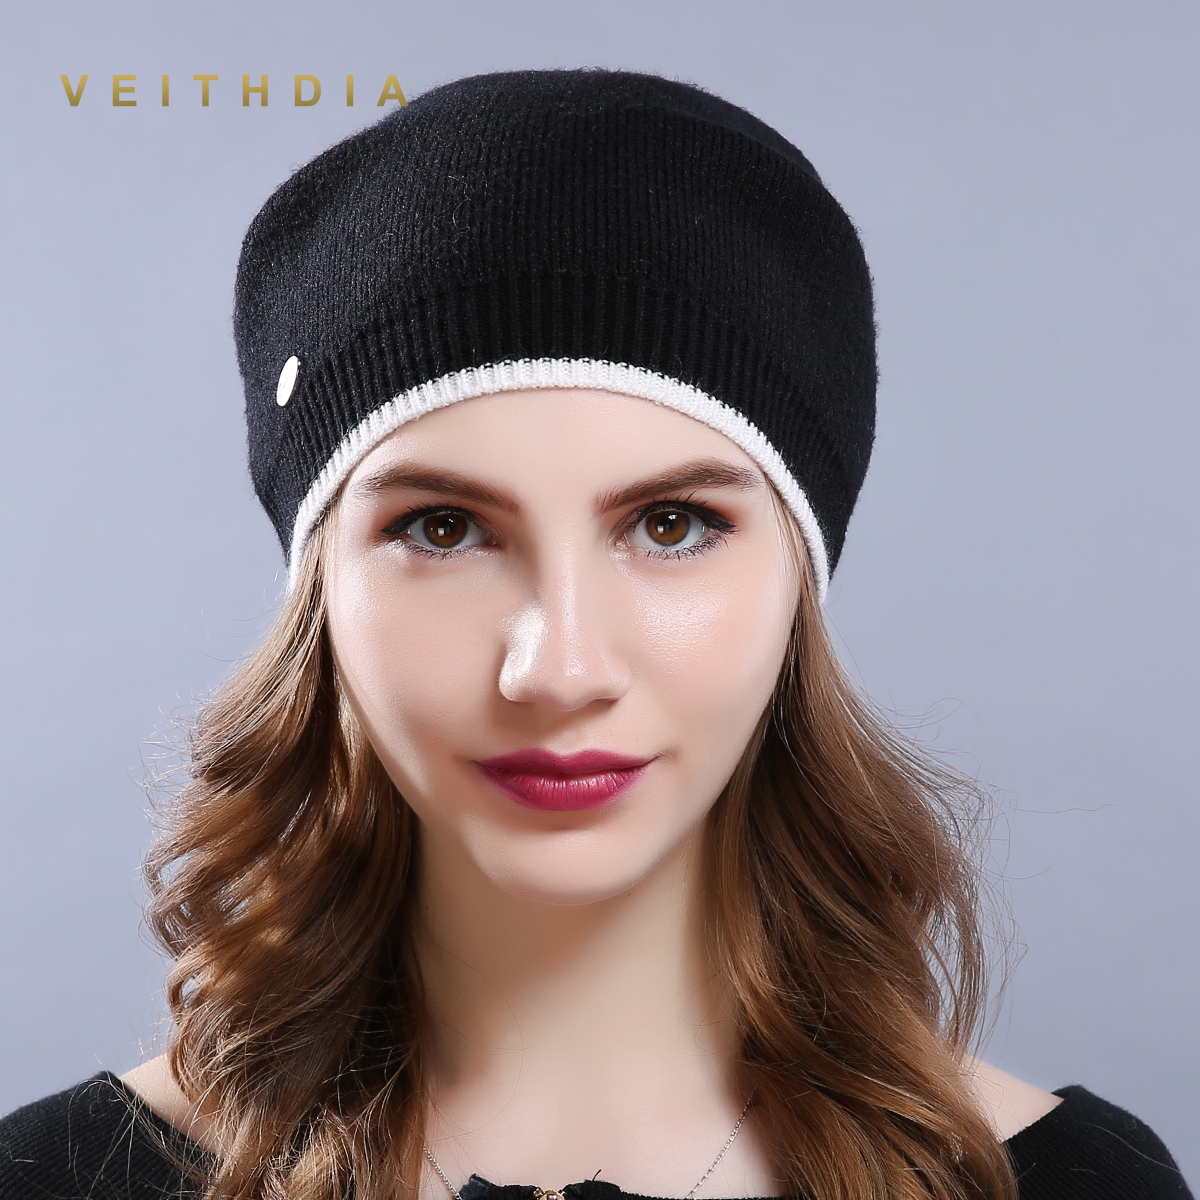 VEITHDIA Women'S Hats Knitted Wool Autumn Winter Casual High Quality Brand New 2019 Hot Sale Flange Hat Female   Skullies     Beanies